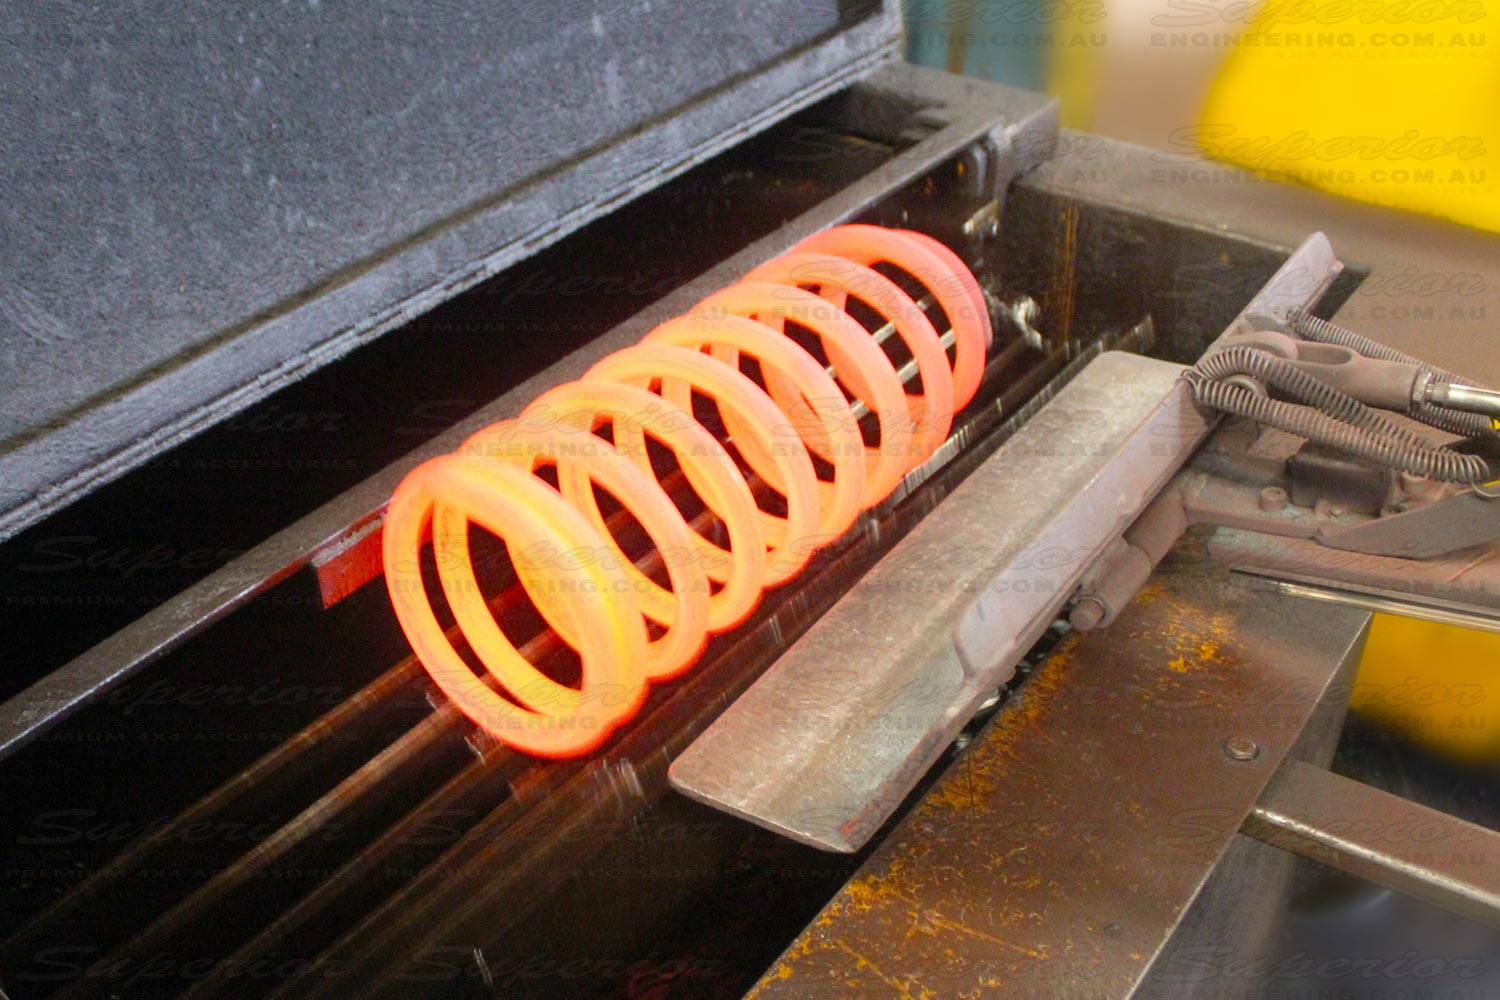 The Superior coils are designed to fit directly into the original vehicles mounting points